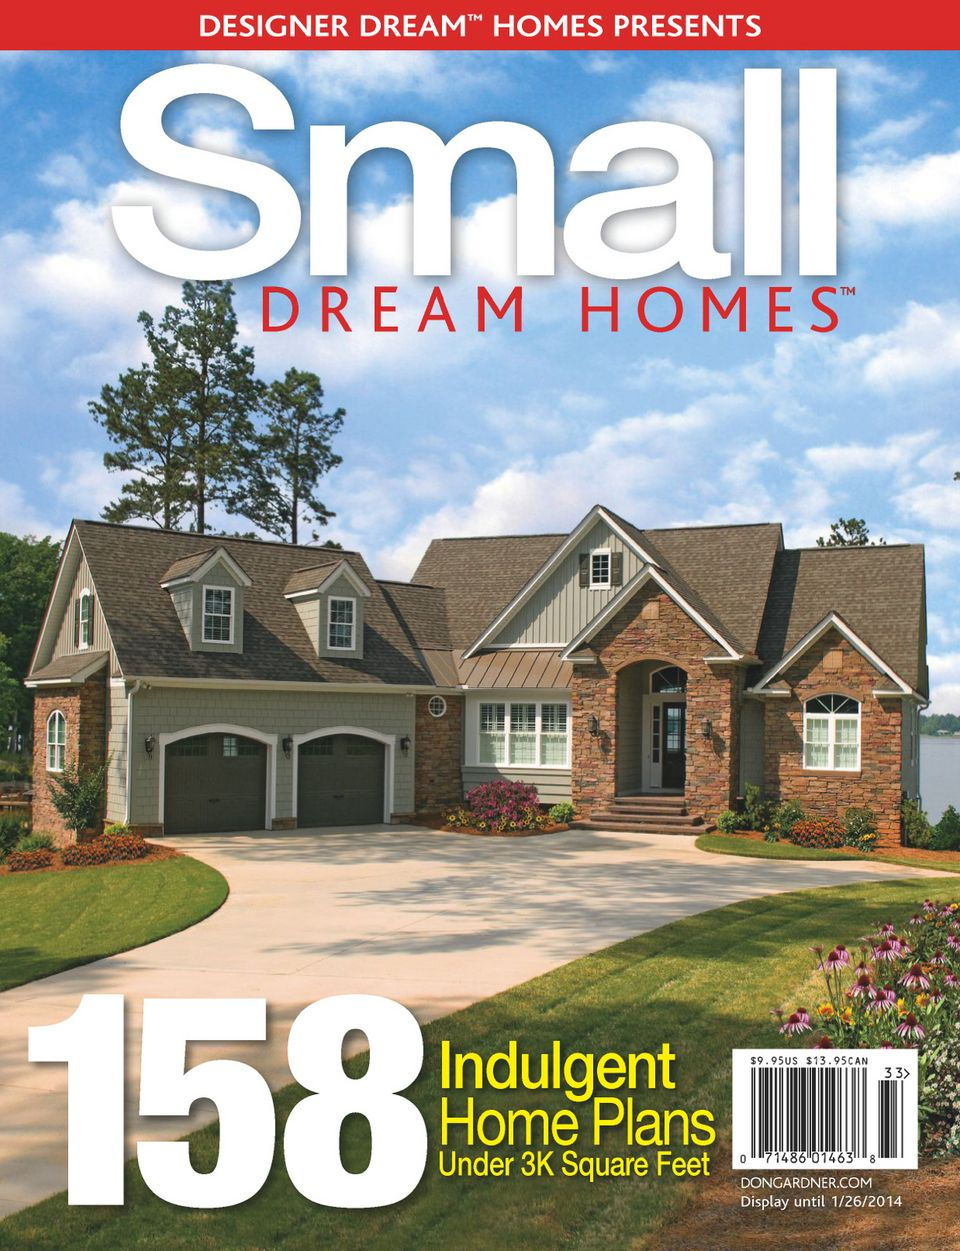 Delightful Designer Dream Homes Small Dream Homes  Hardley And Edgewater. Great Pictures